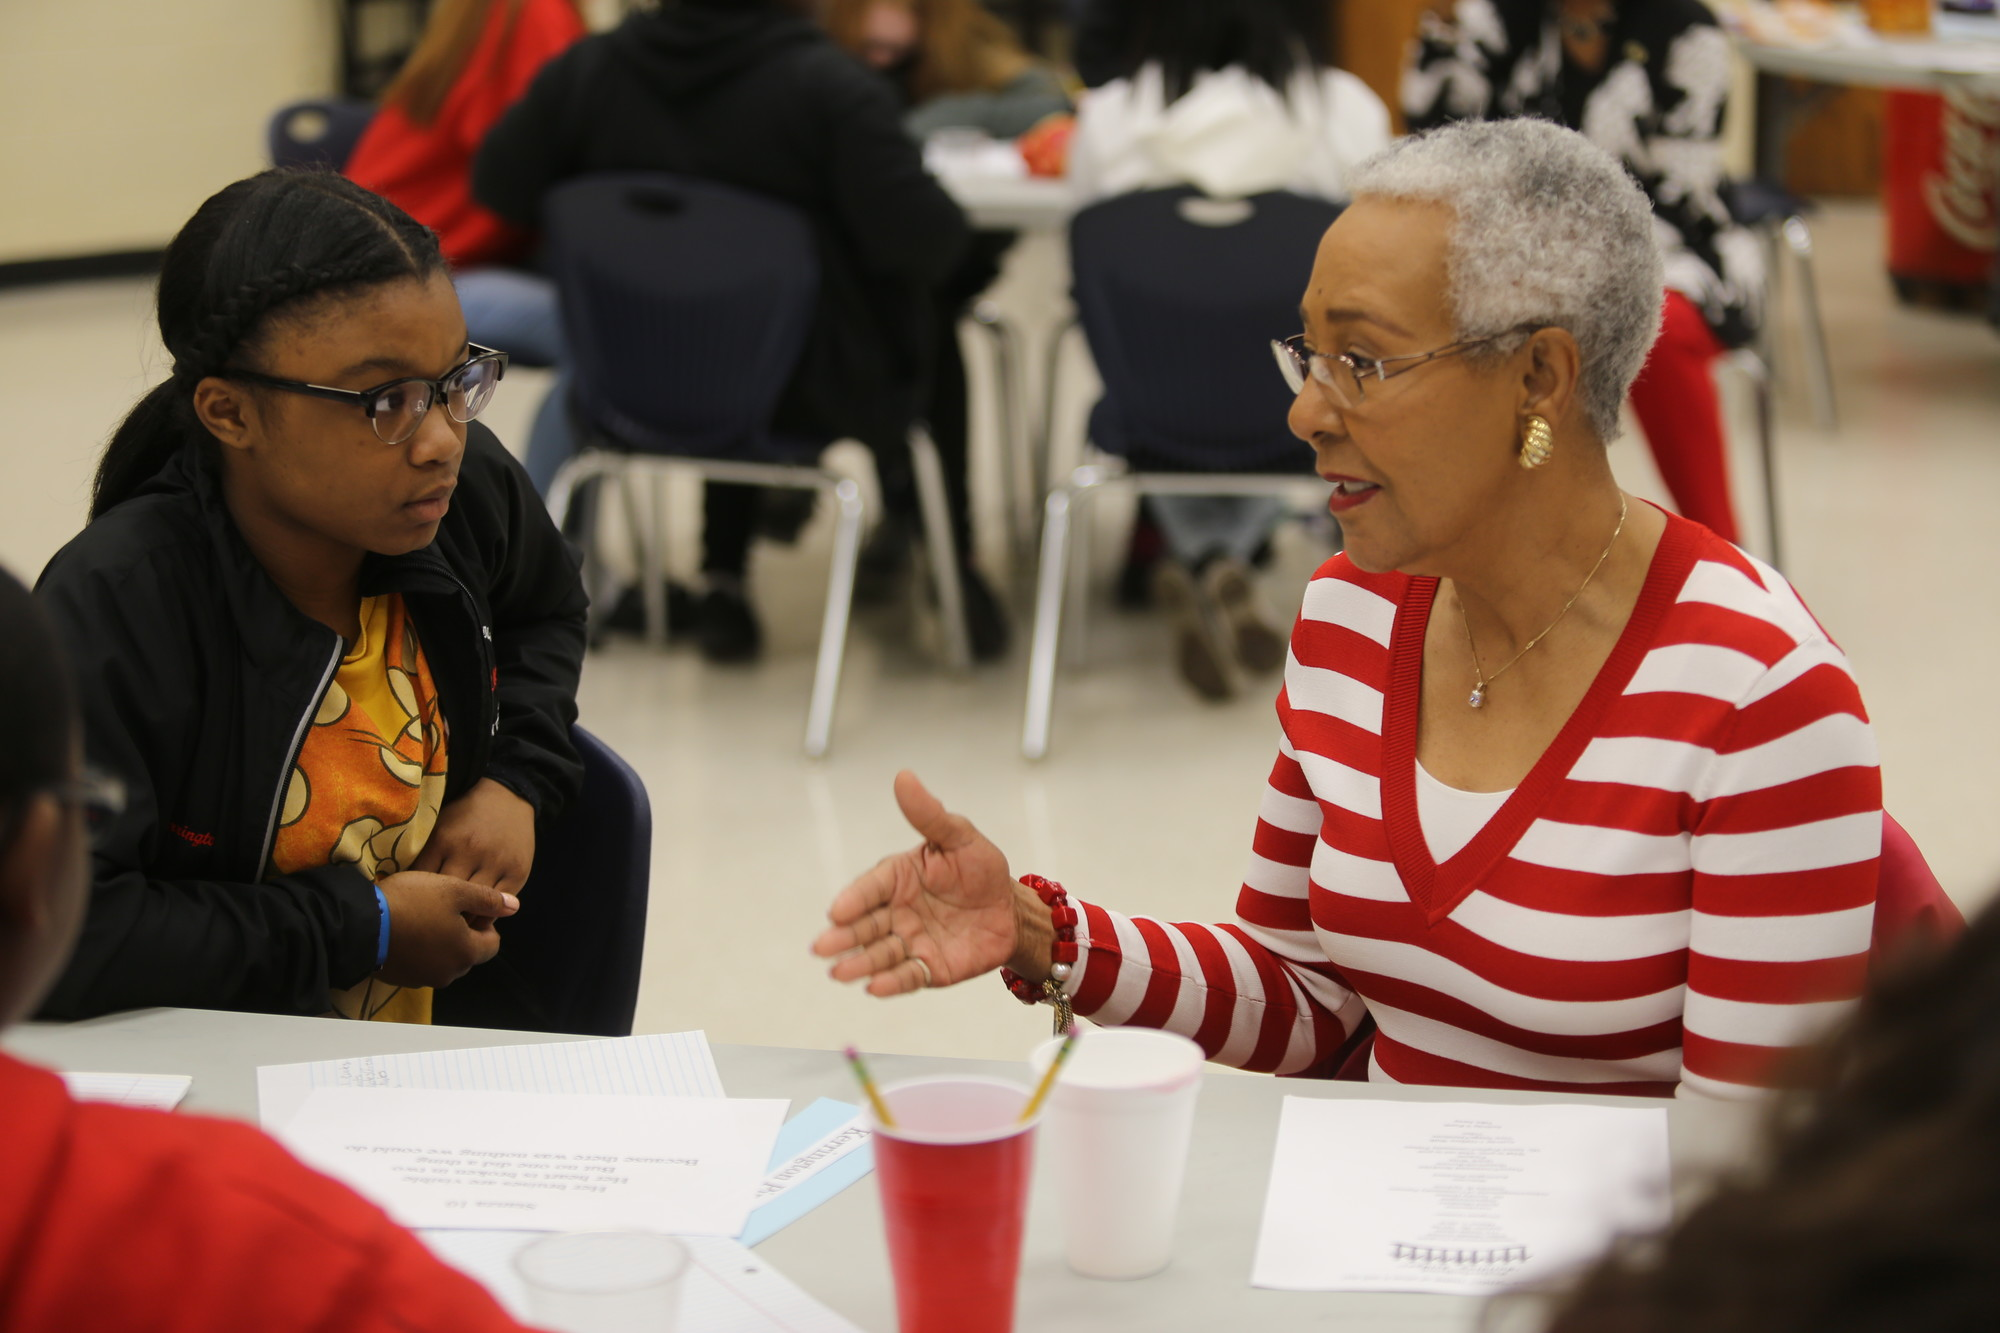 Bates Middle School student Kerrington Pinckney listens Wednesday as adult volunteer Gloria Summers talks Wednesday during an intergenerational program session at the school.